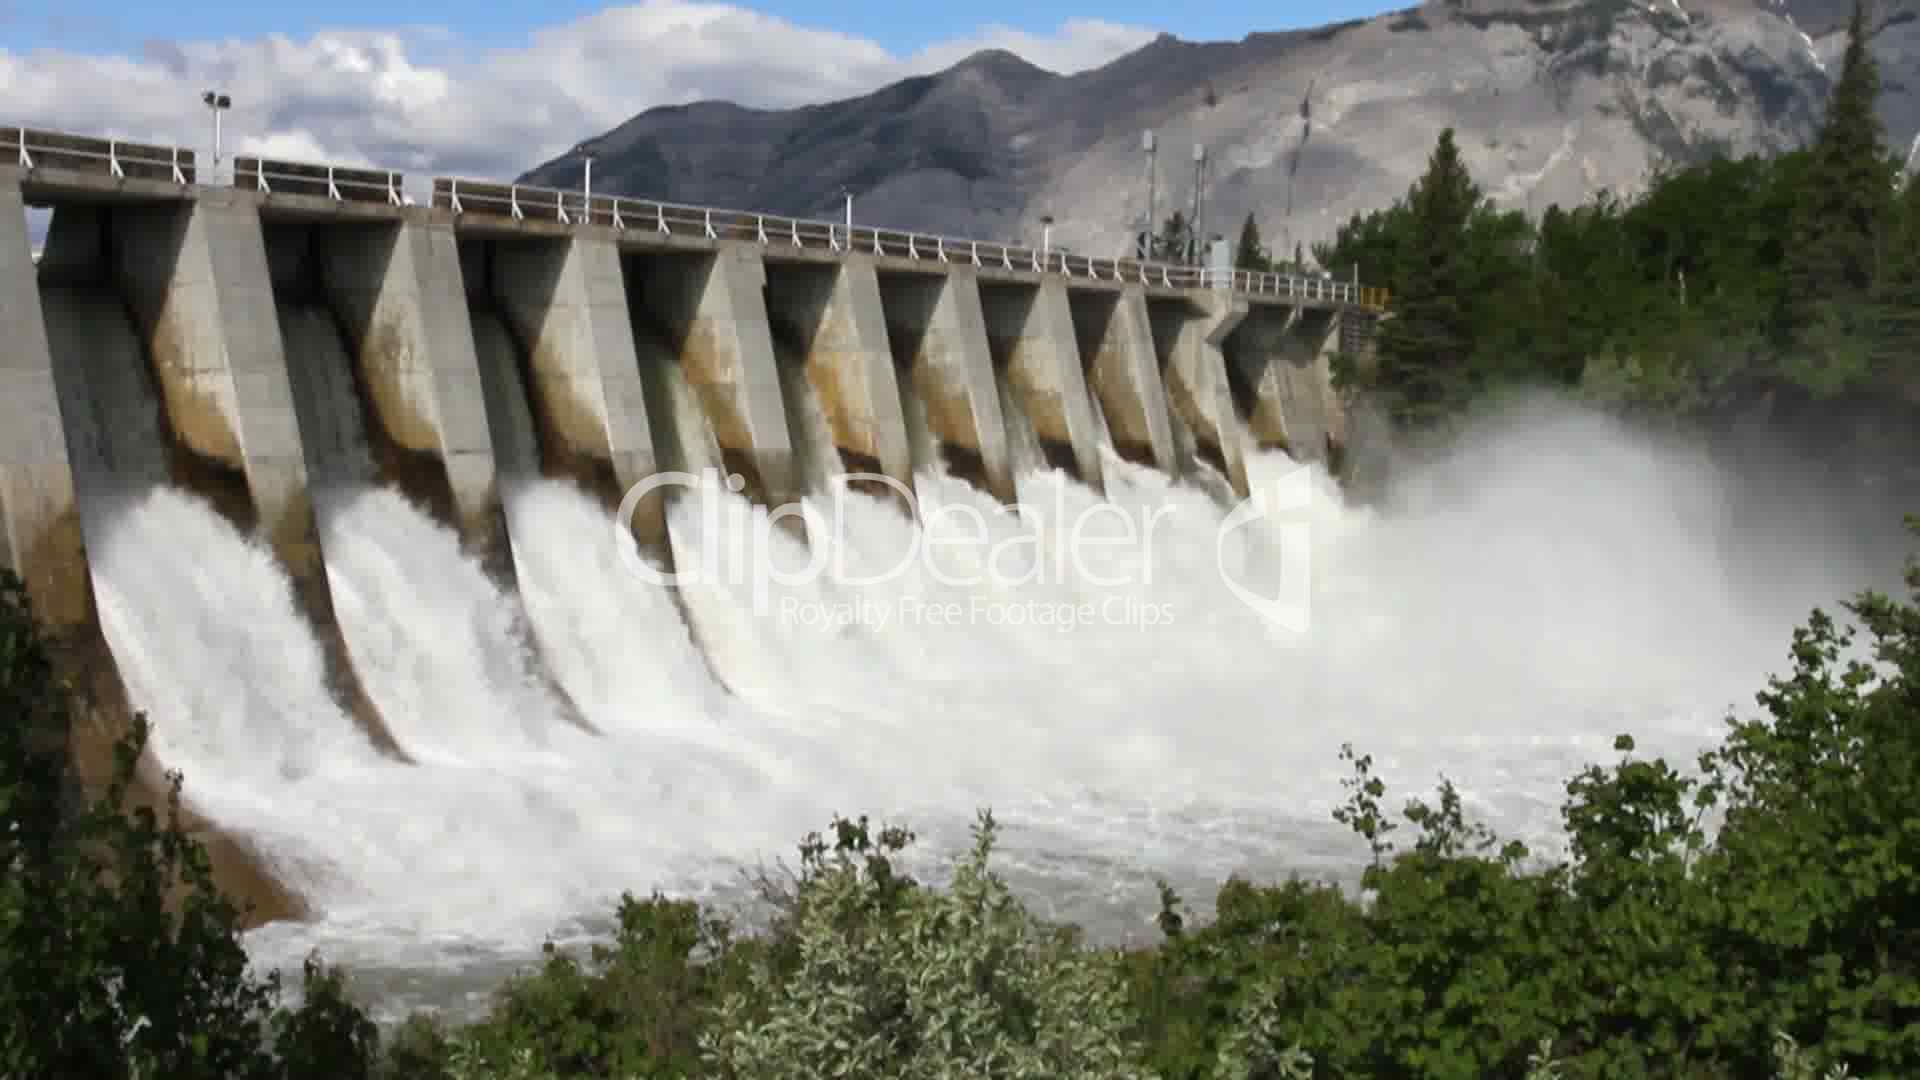 Hydro Electric Power Dam Royalty Free Video And Stock Footage